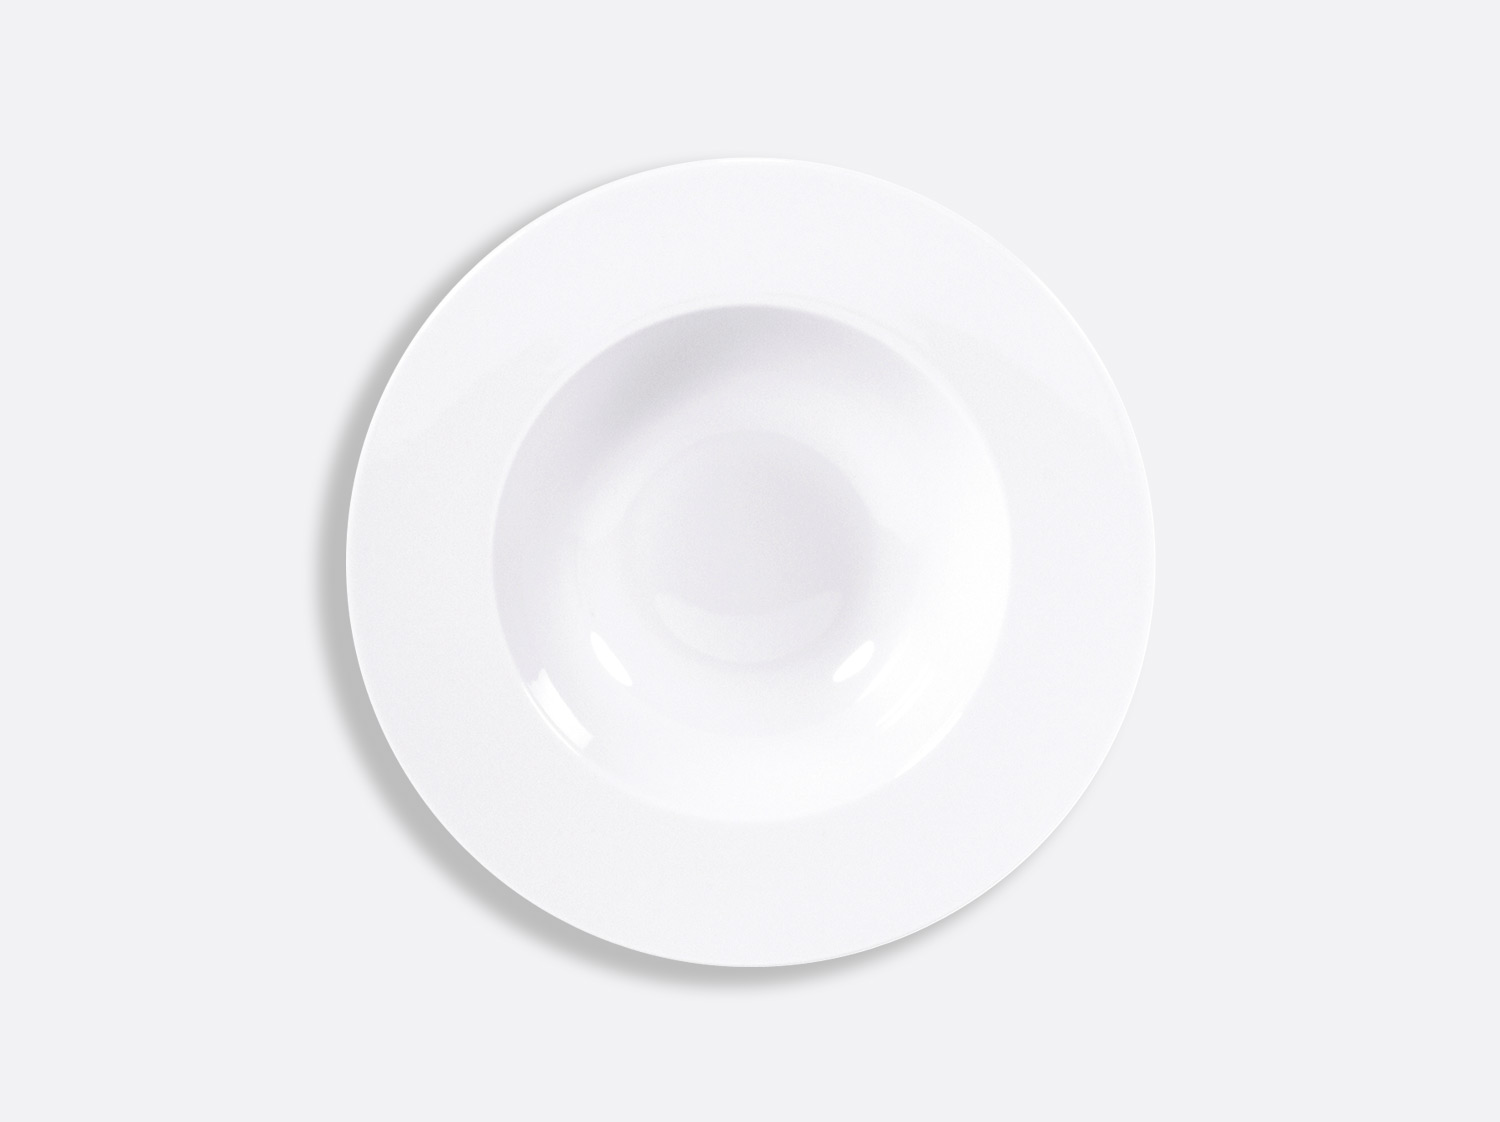 China Rim soup 22 cm of the collection Astre blanc | Bernardaud